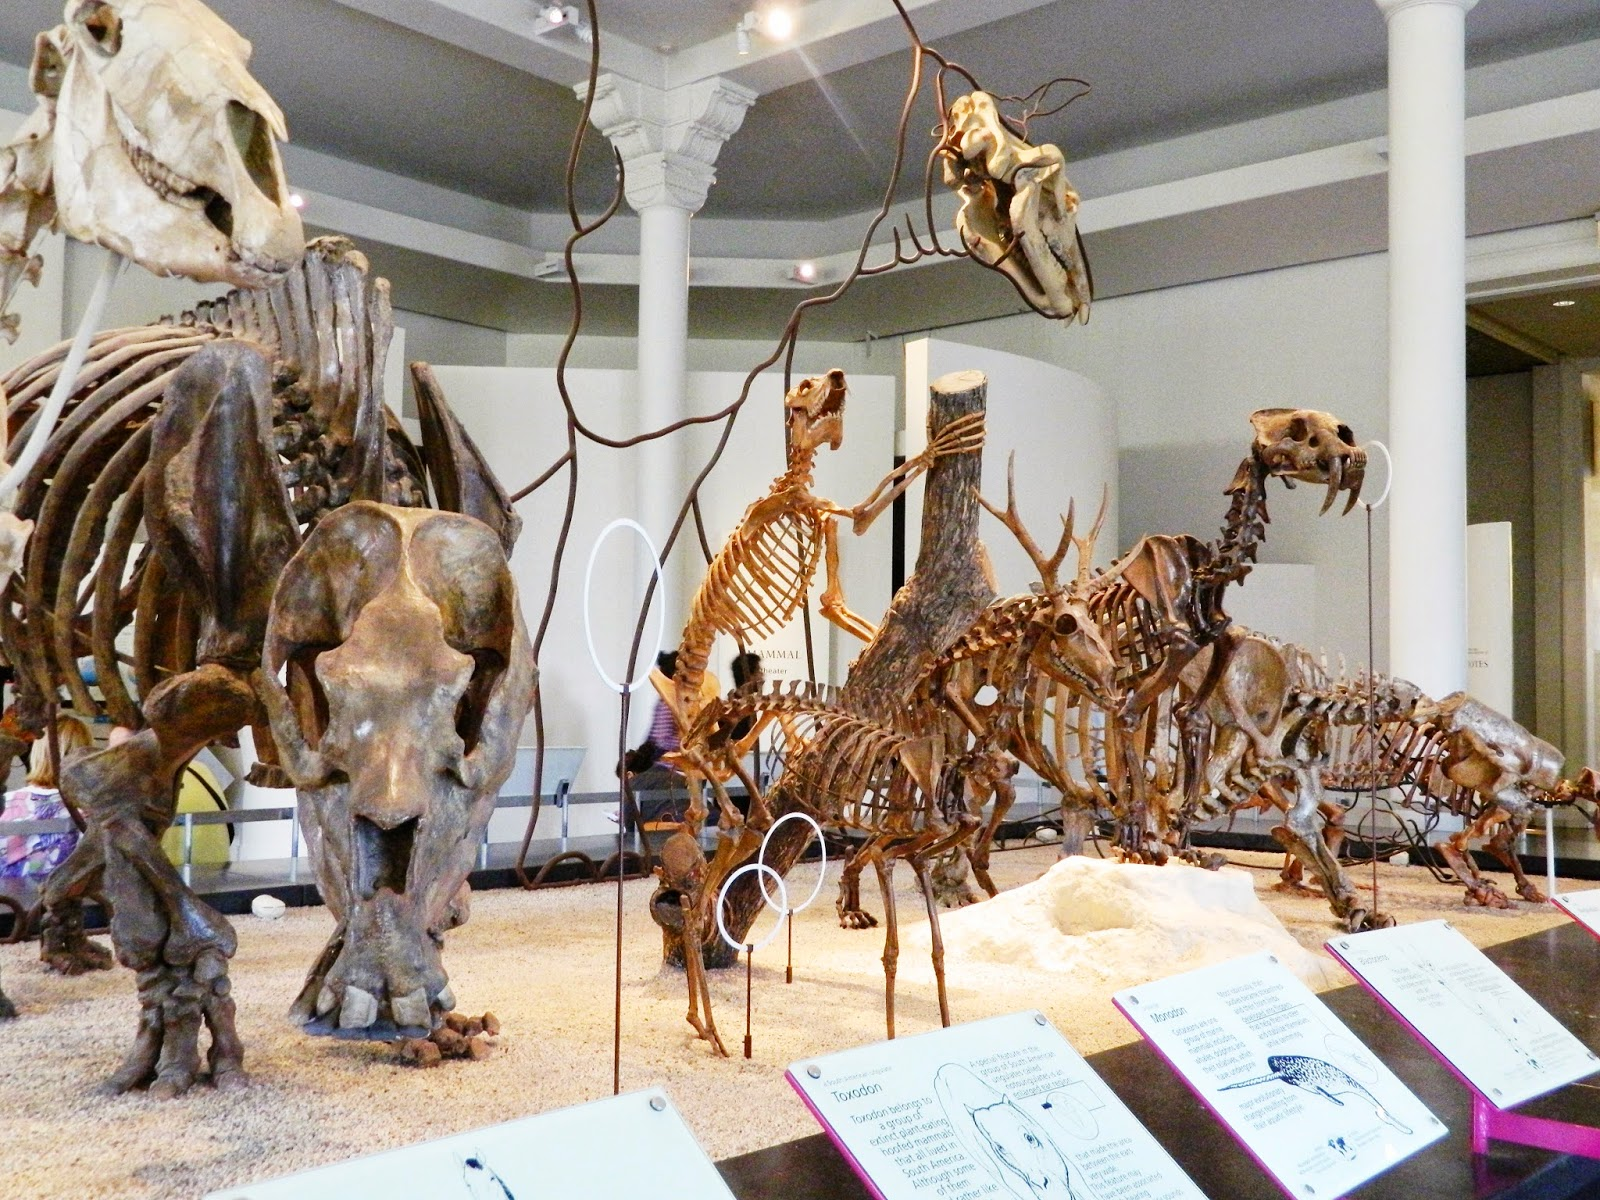 new york city american national history museum animal and dinosaur bones poses inside clear